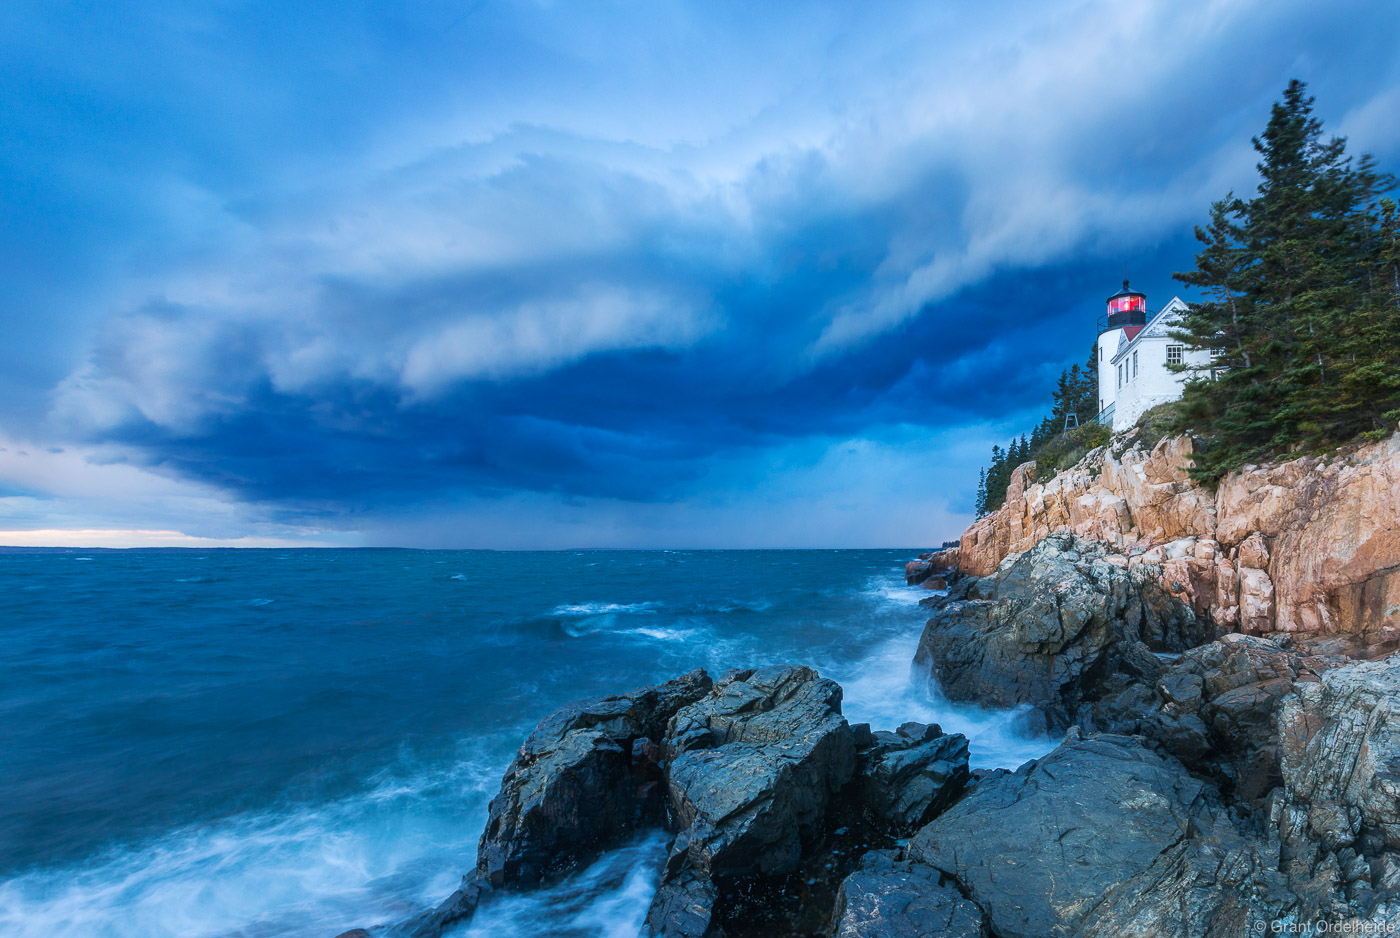 An impending storm above the Bass Harbor Head Lighthouse in Maine's Acadia National Park.